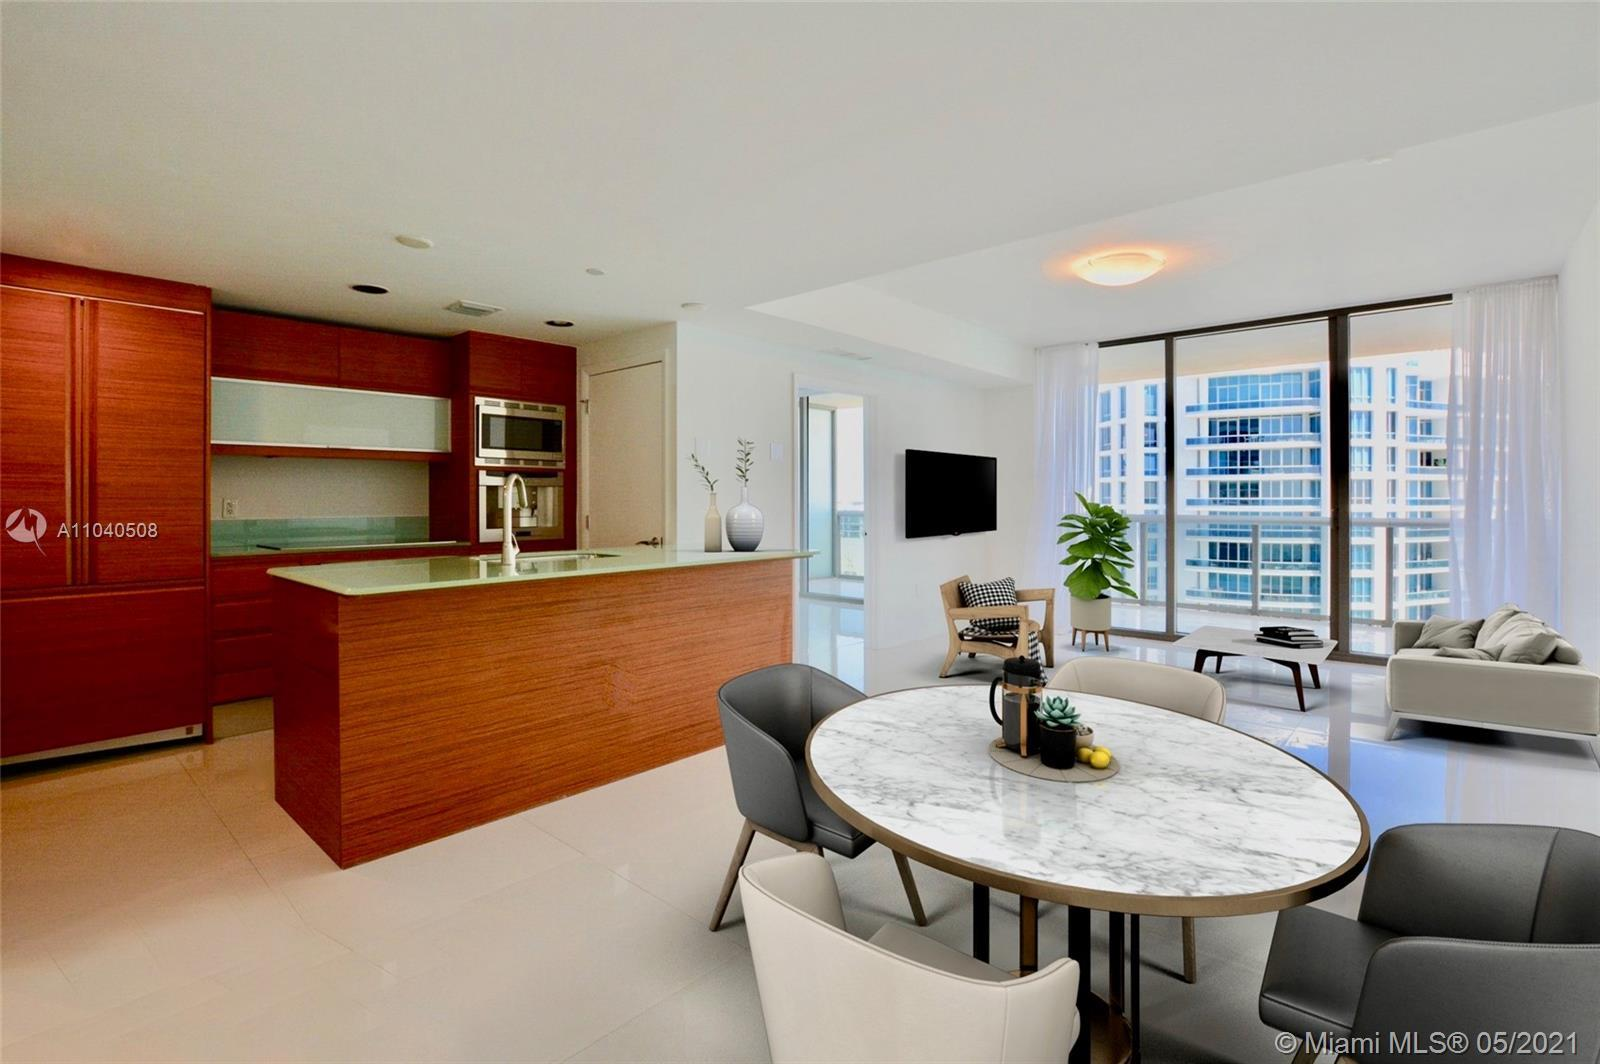 Very bright 2 bedroom 2.5 bathroom residence with Ocean Views from all rooms at Mei. High floor matt